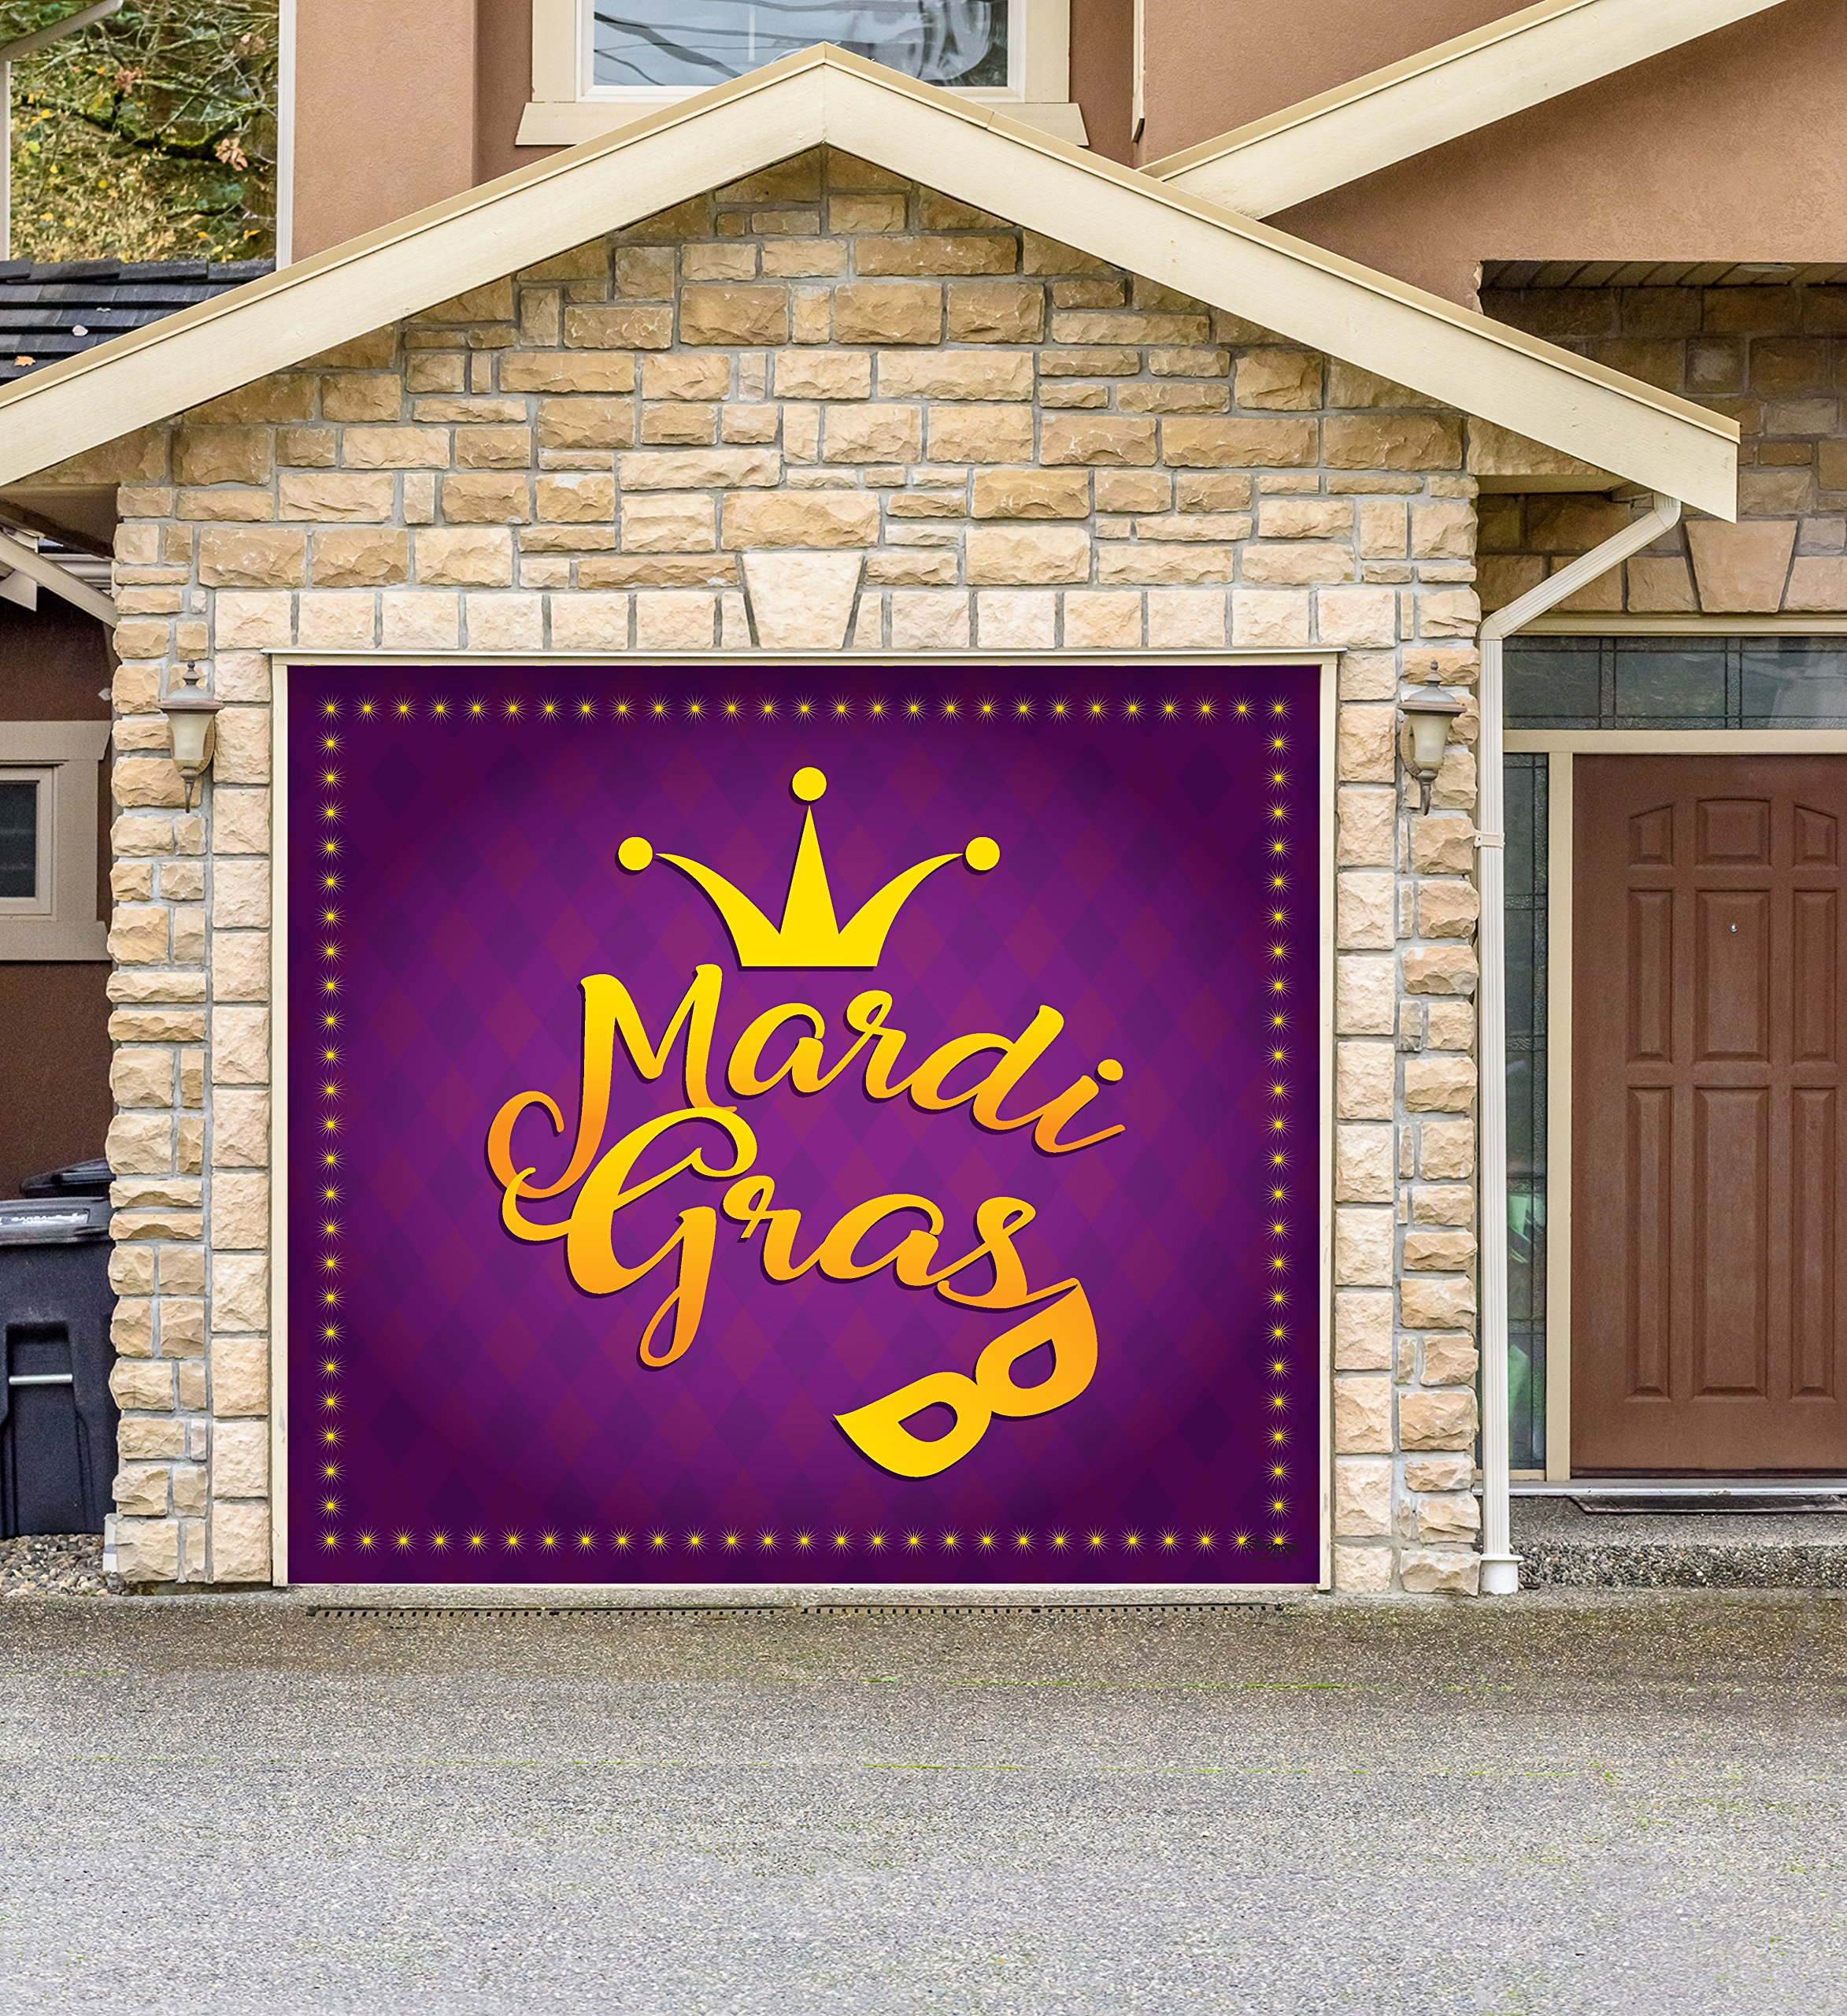 Outdoor Mardi Gras Decorations Garage Door Banner Cover Mural Décoration 8'x9' - Mardi Gras Crown and Mask - ''The Original Mardi Gras Supplies Holiday Garage Door Banner Decor'' by Victory Corps